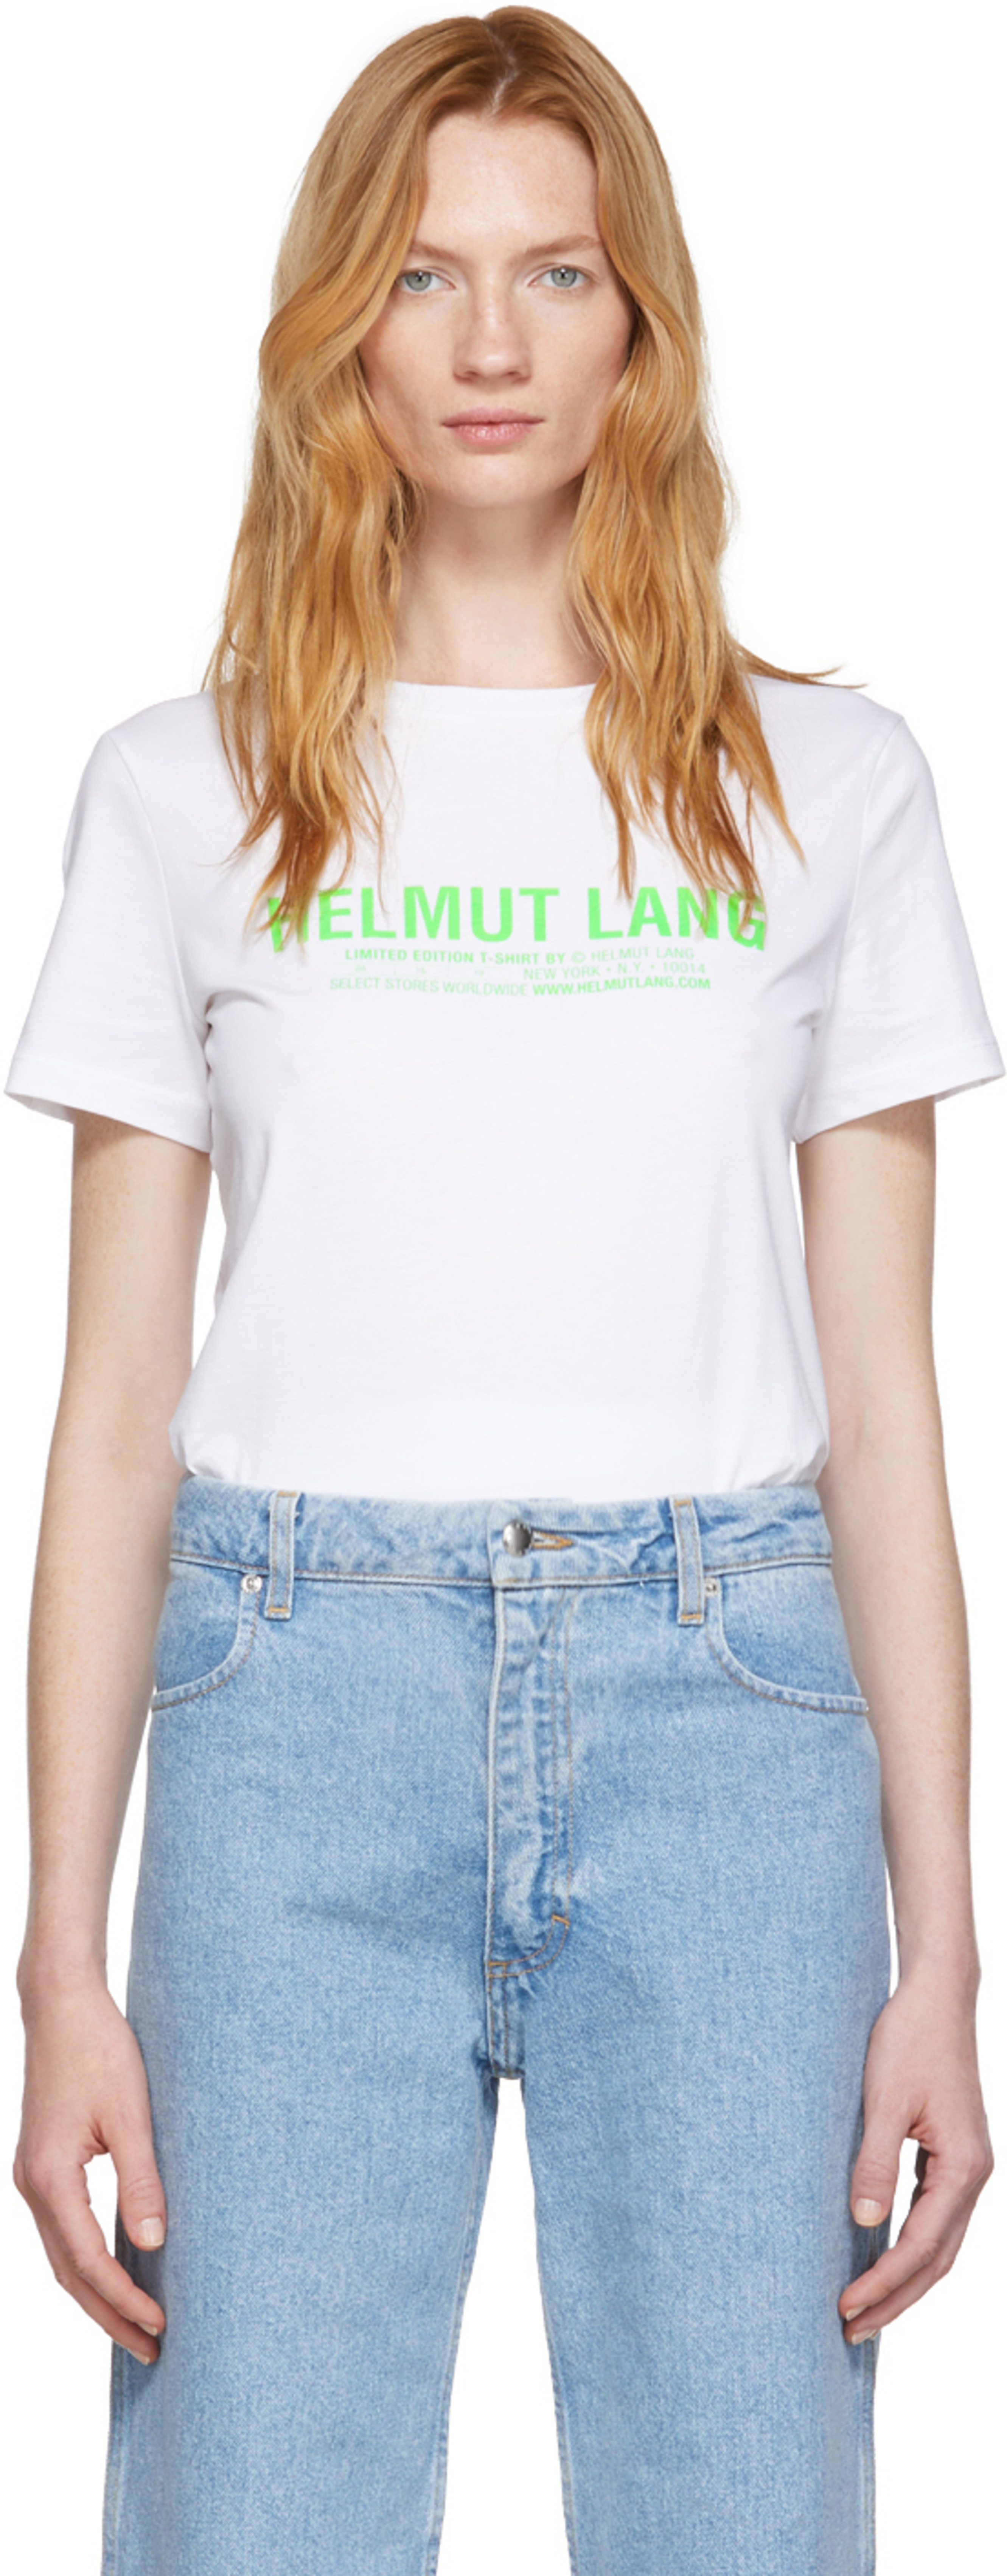 049082c694d7c Helmut Lang for Women SS19 Collection